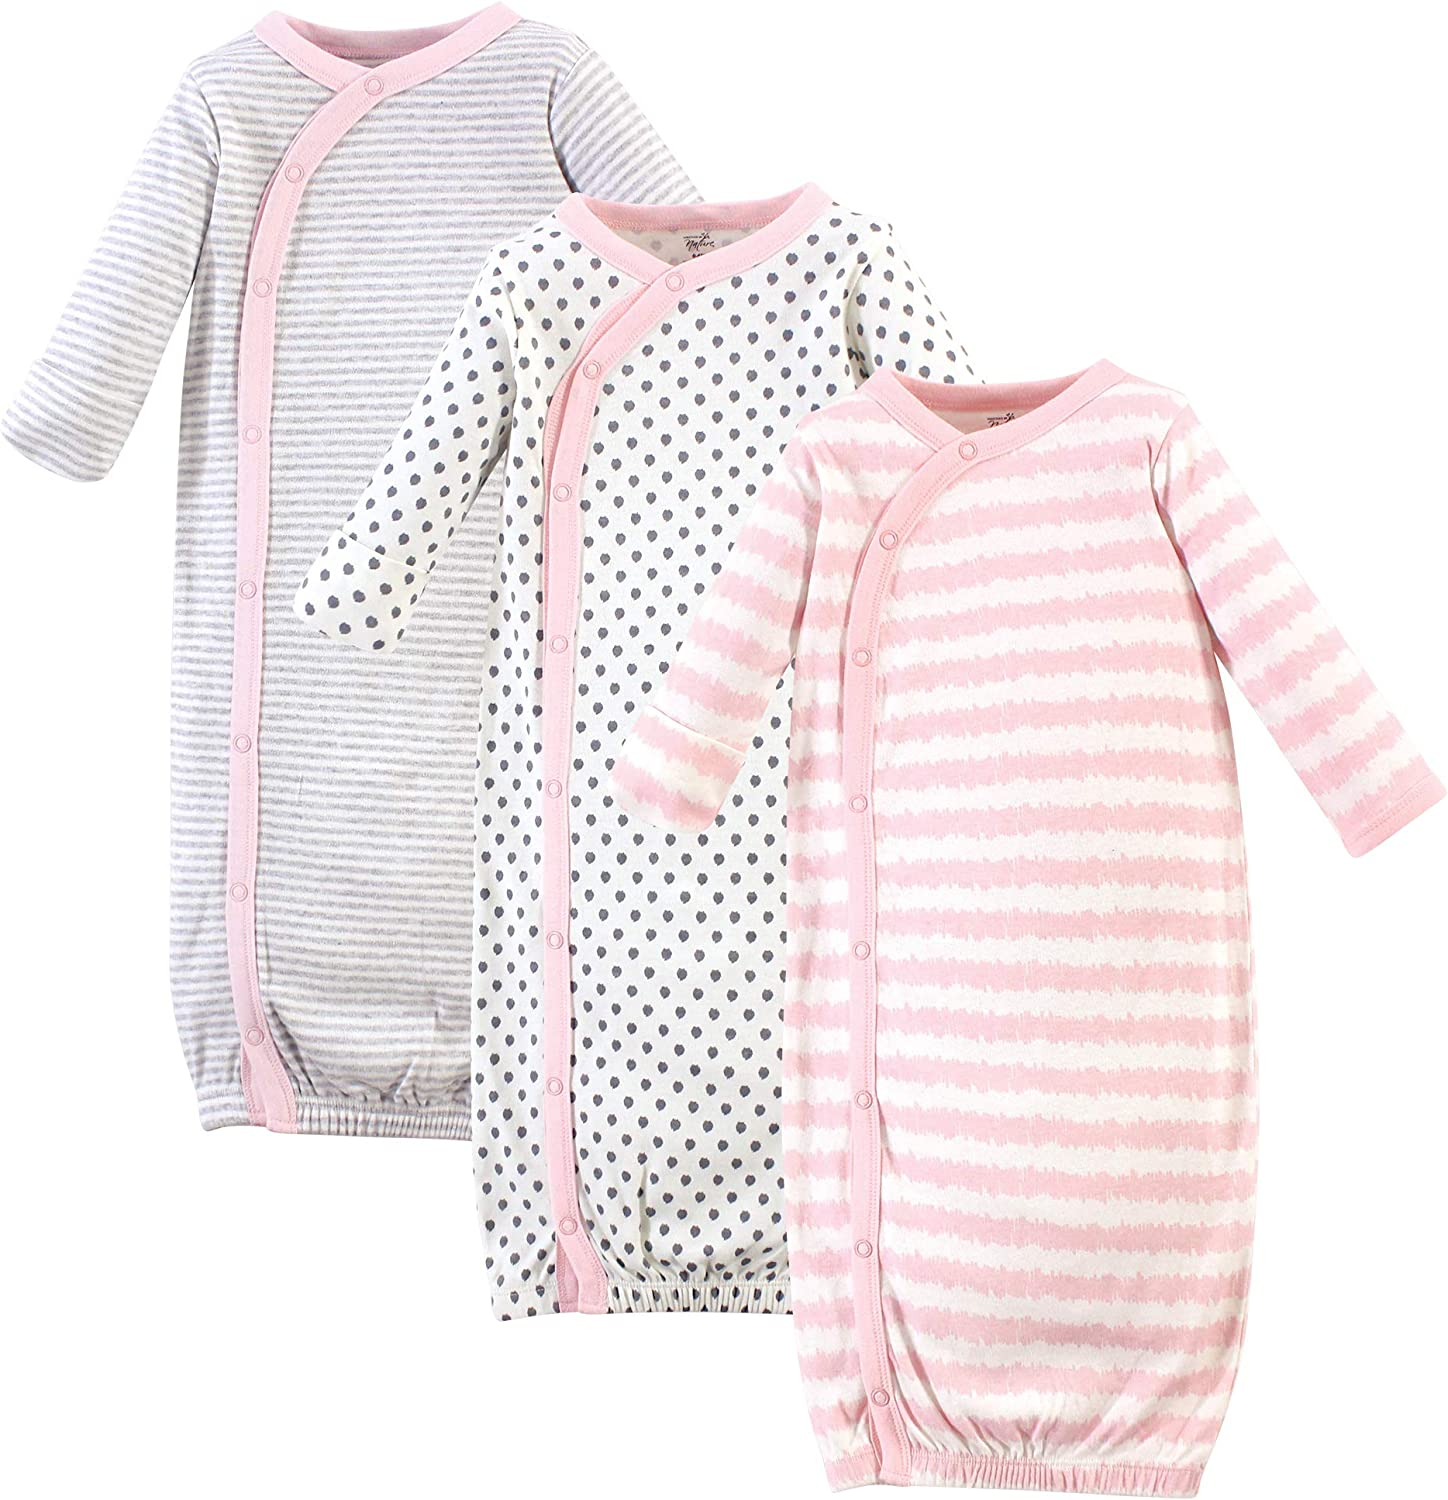 Touched by Nature Baby Organic Cotton Kimono Gowns